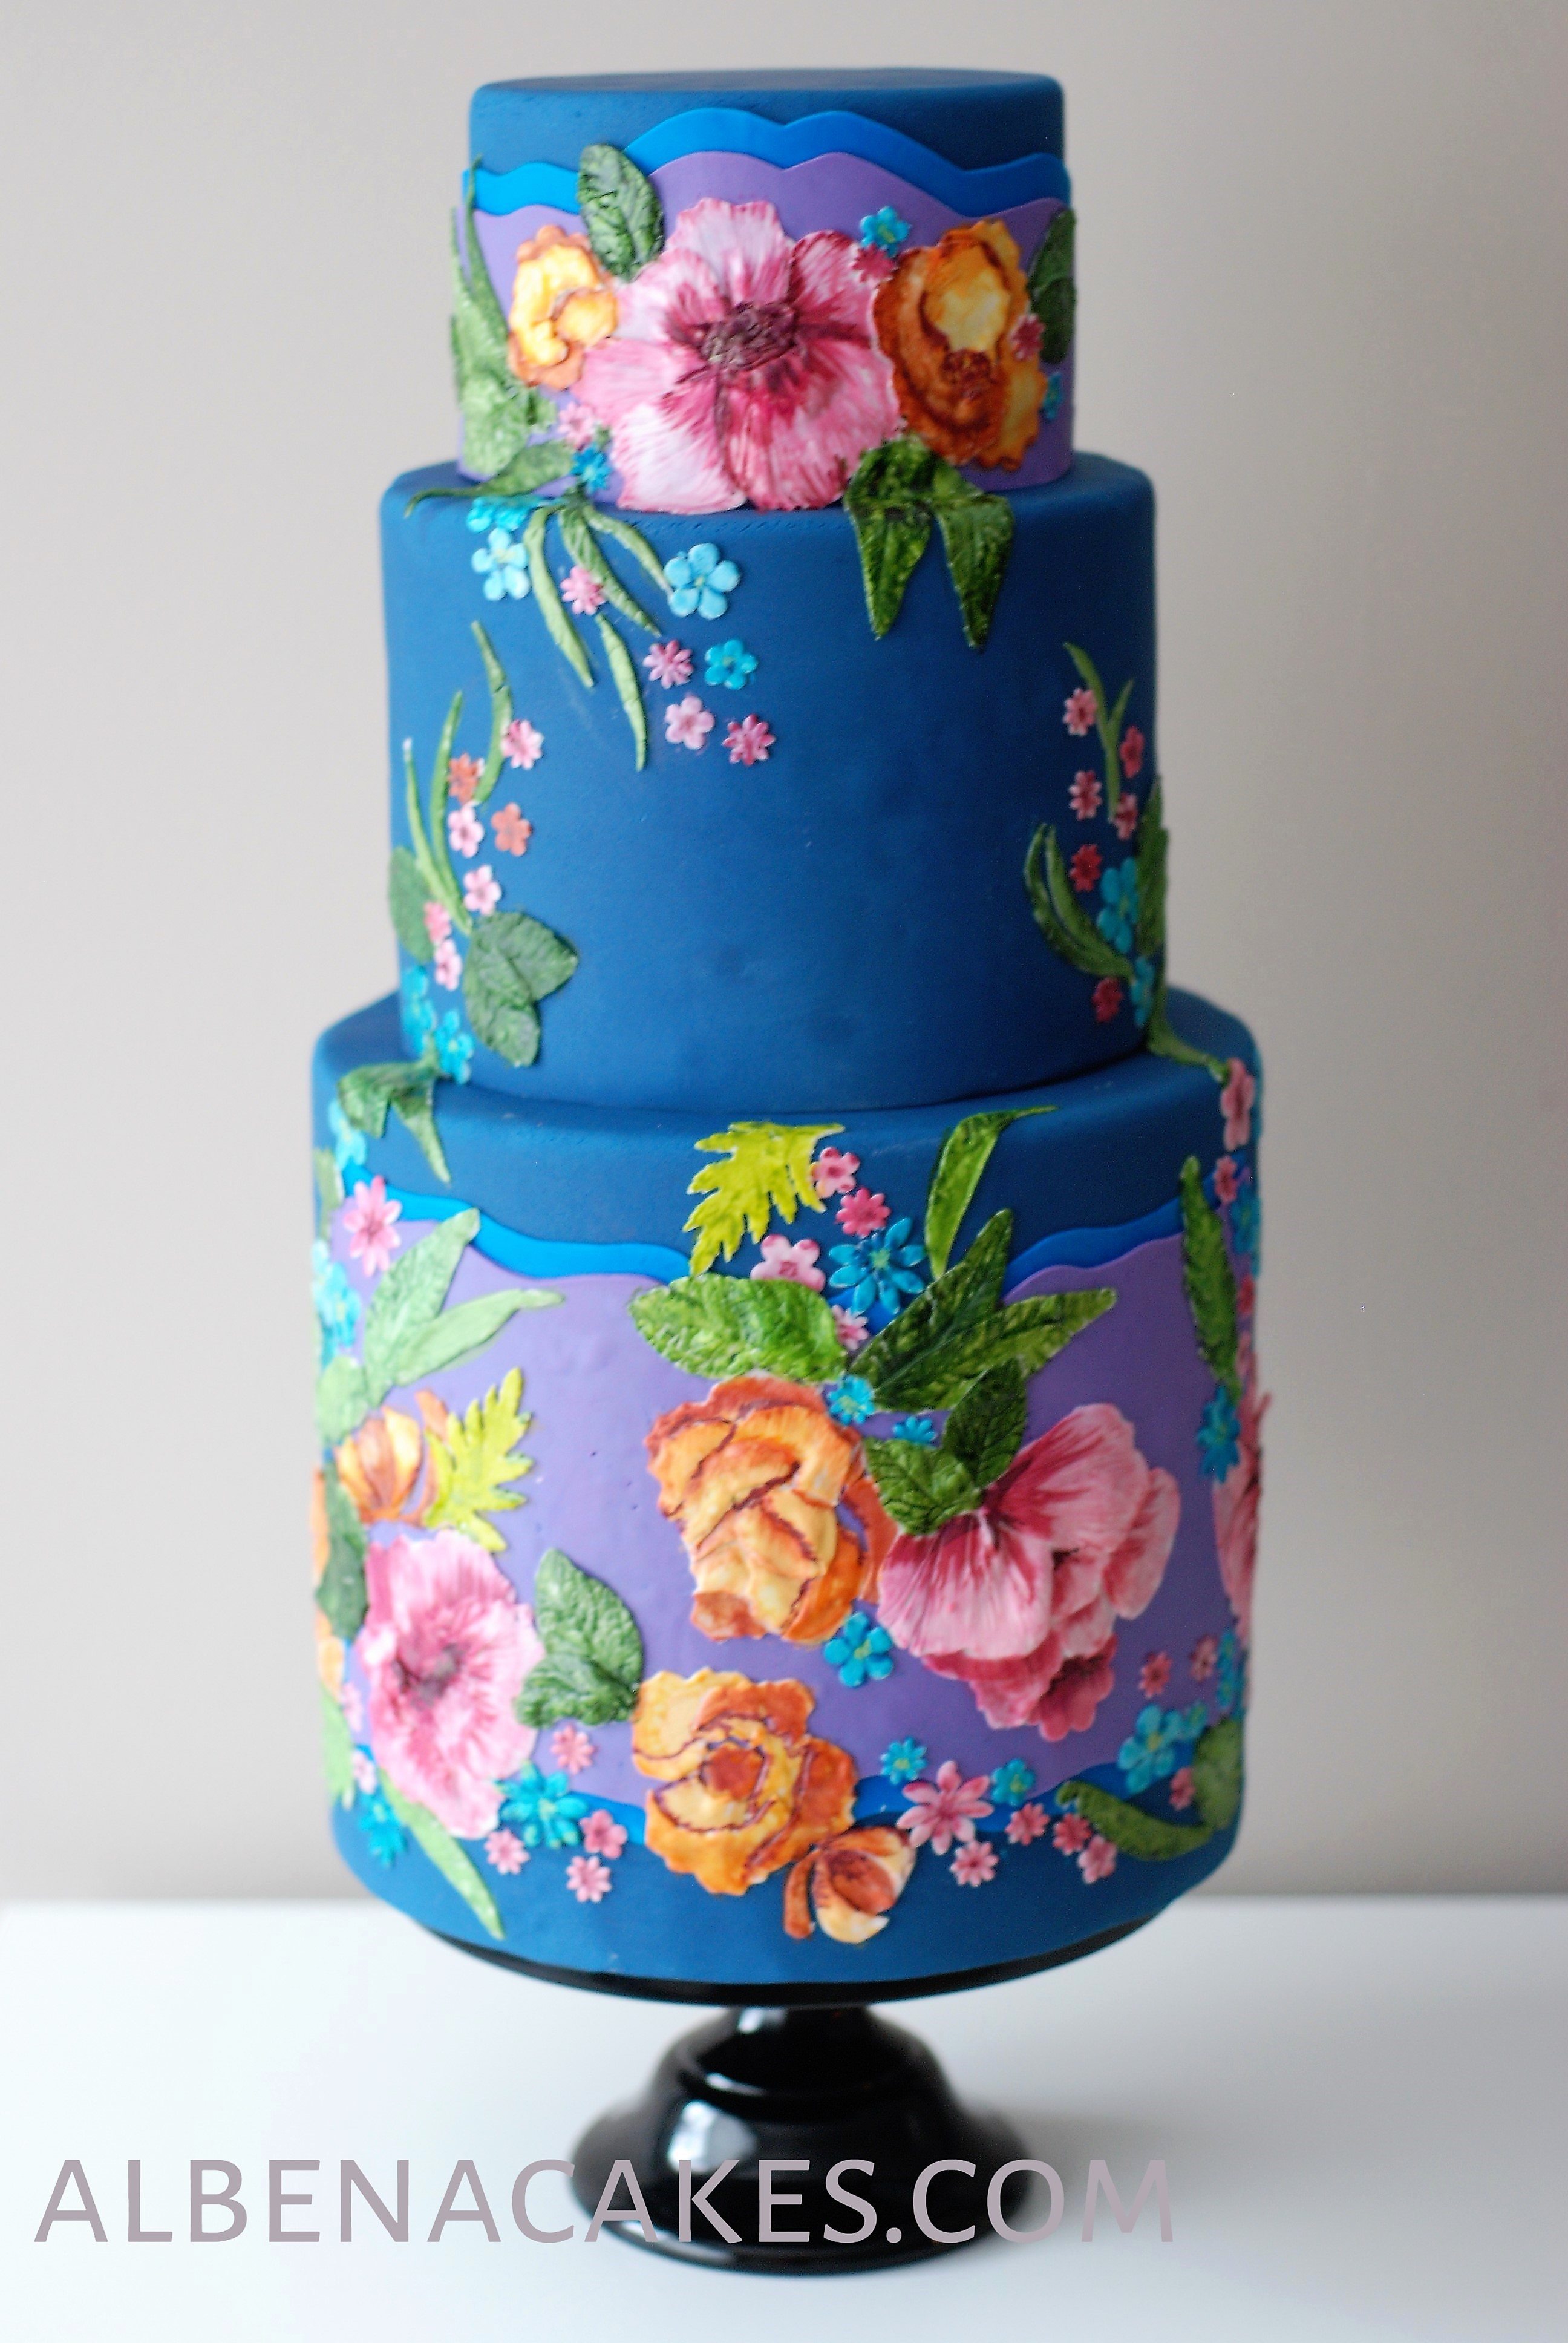 Bright blue resort theme wedding cake with hand painted florals